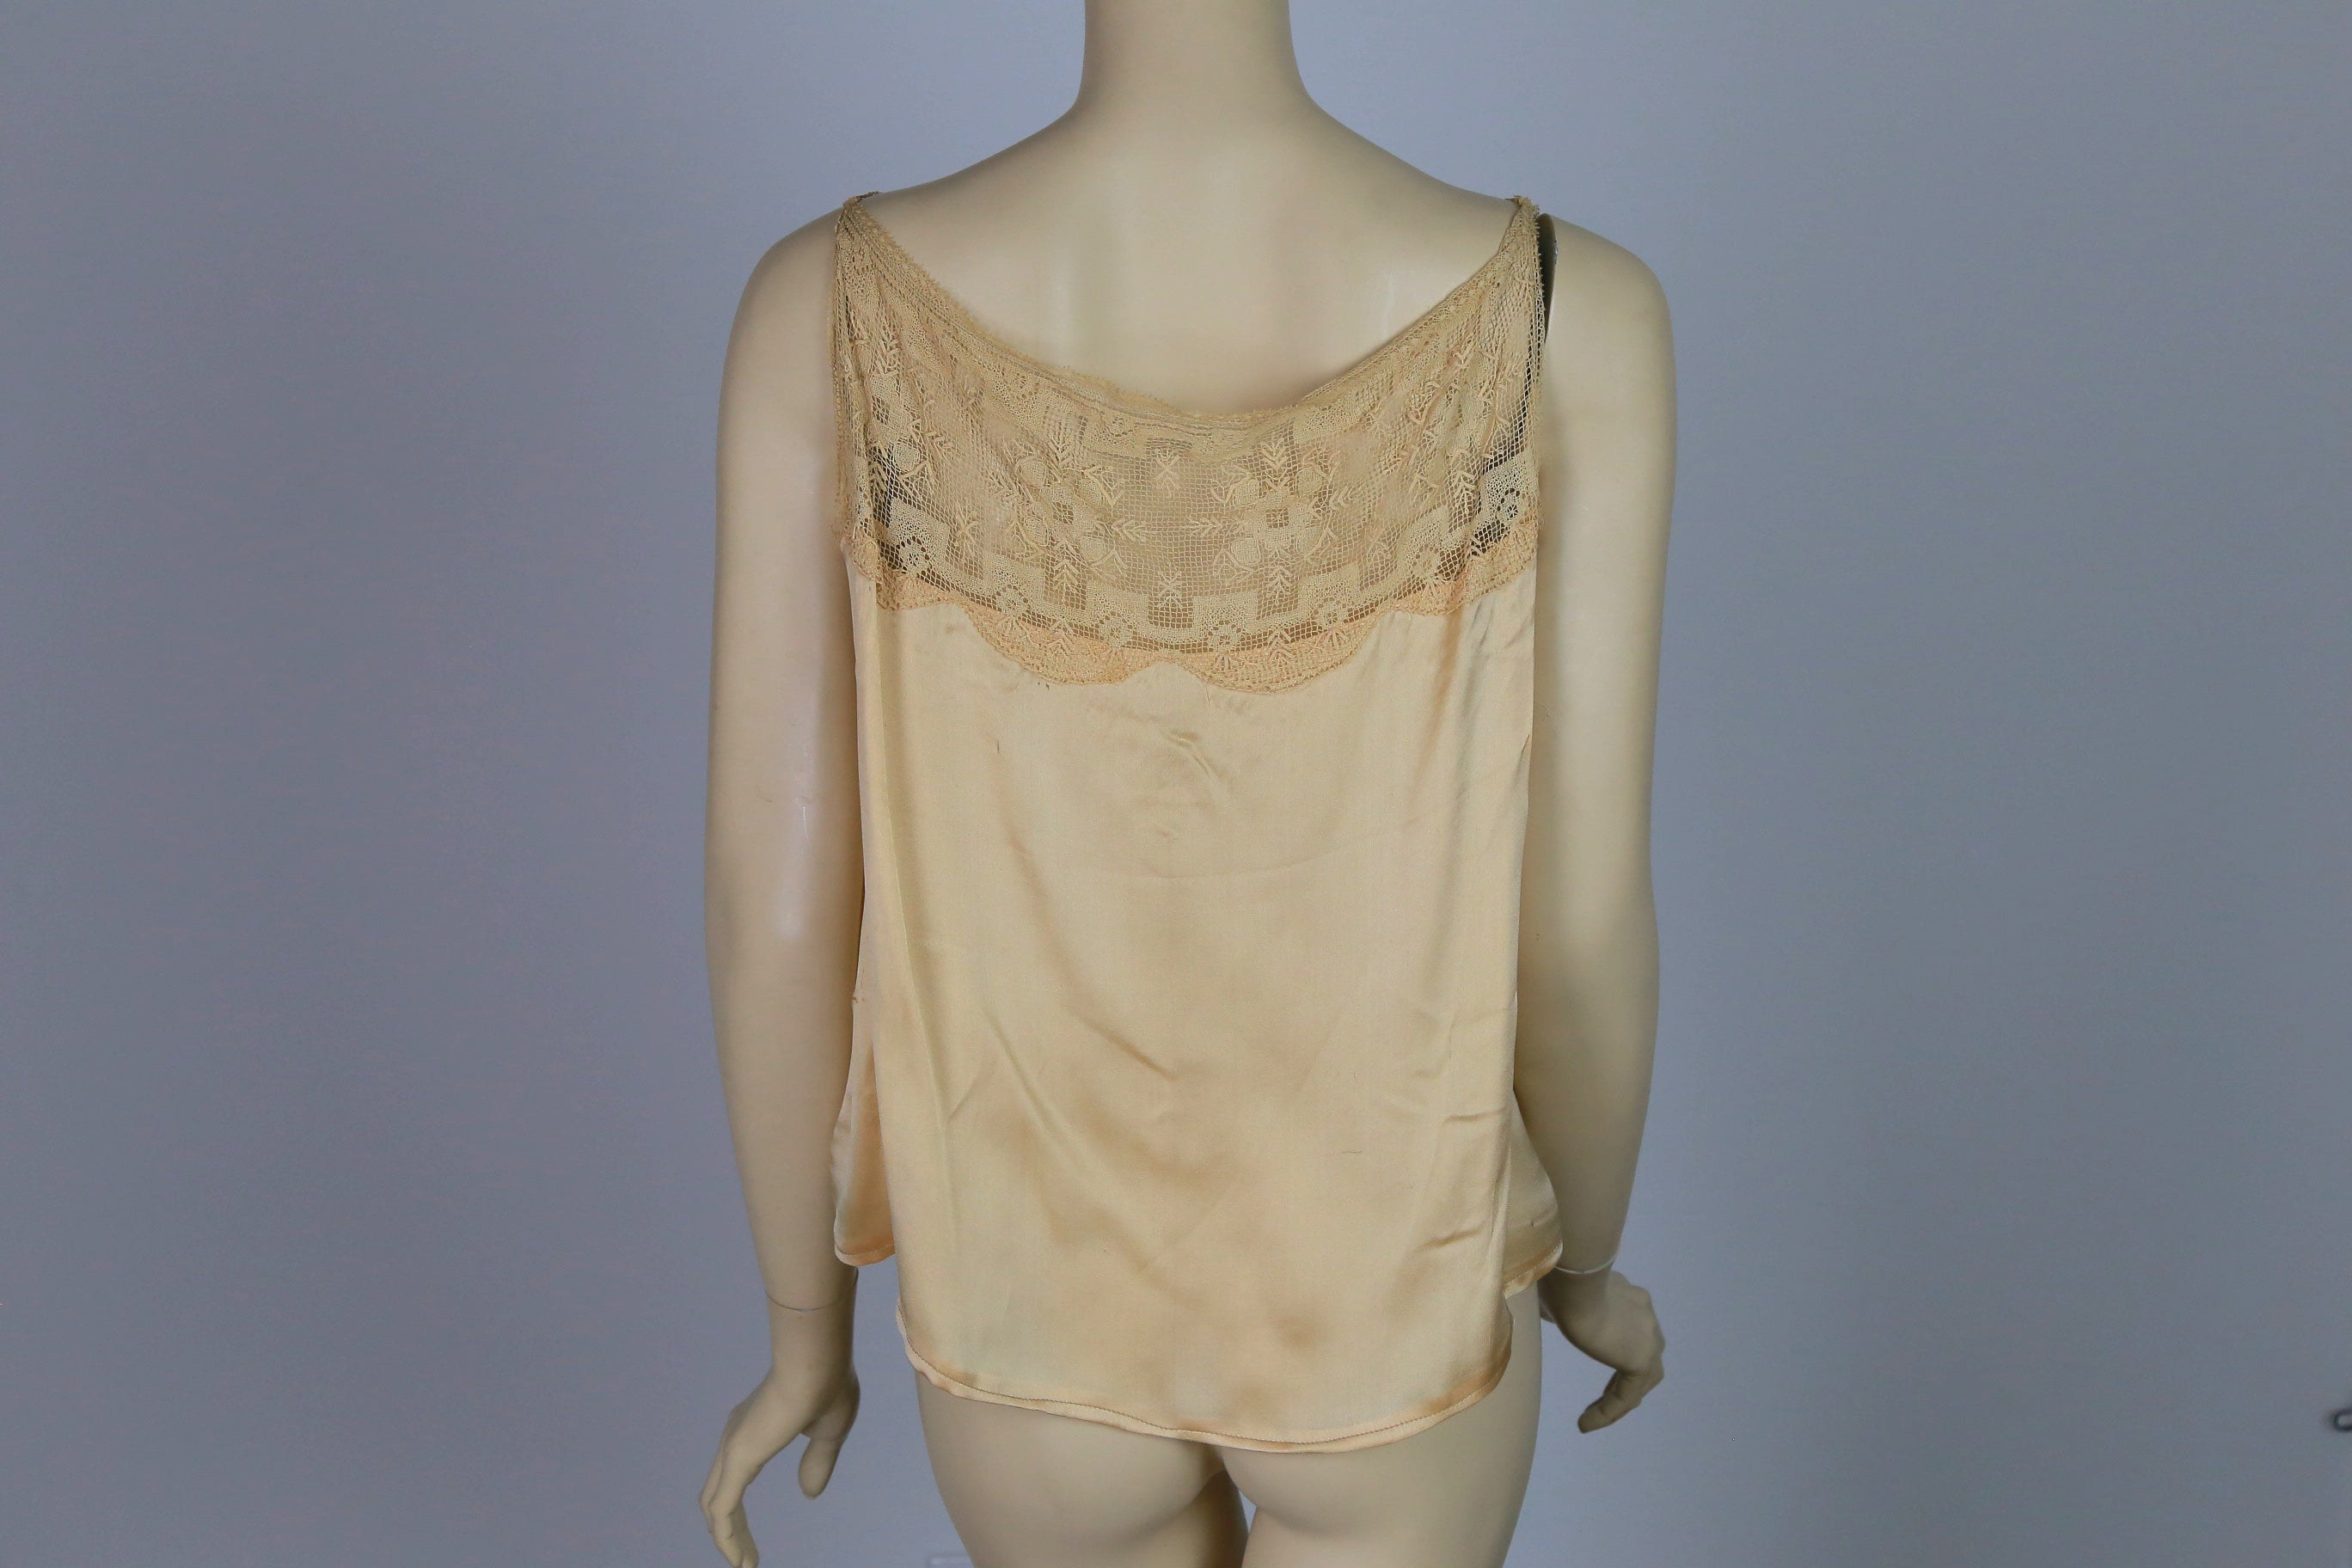 Antique Victorian chemise corset cover silk and lace